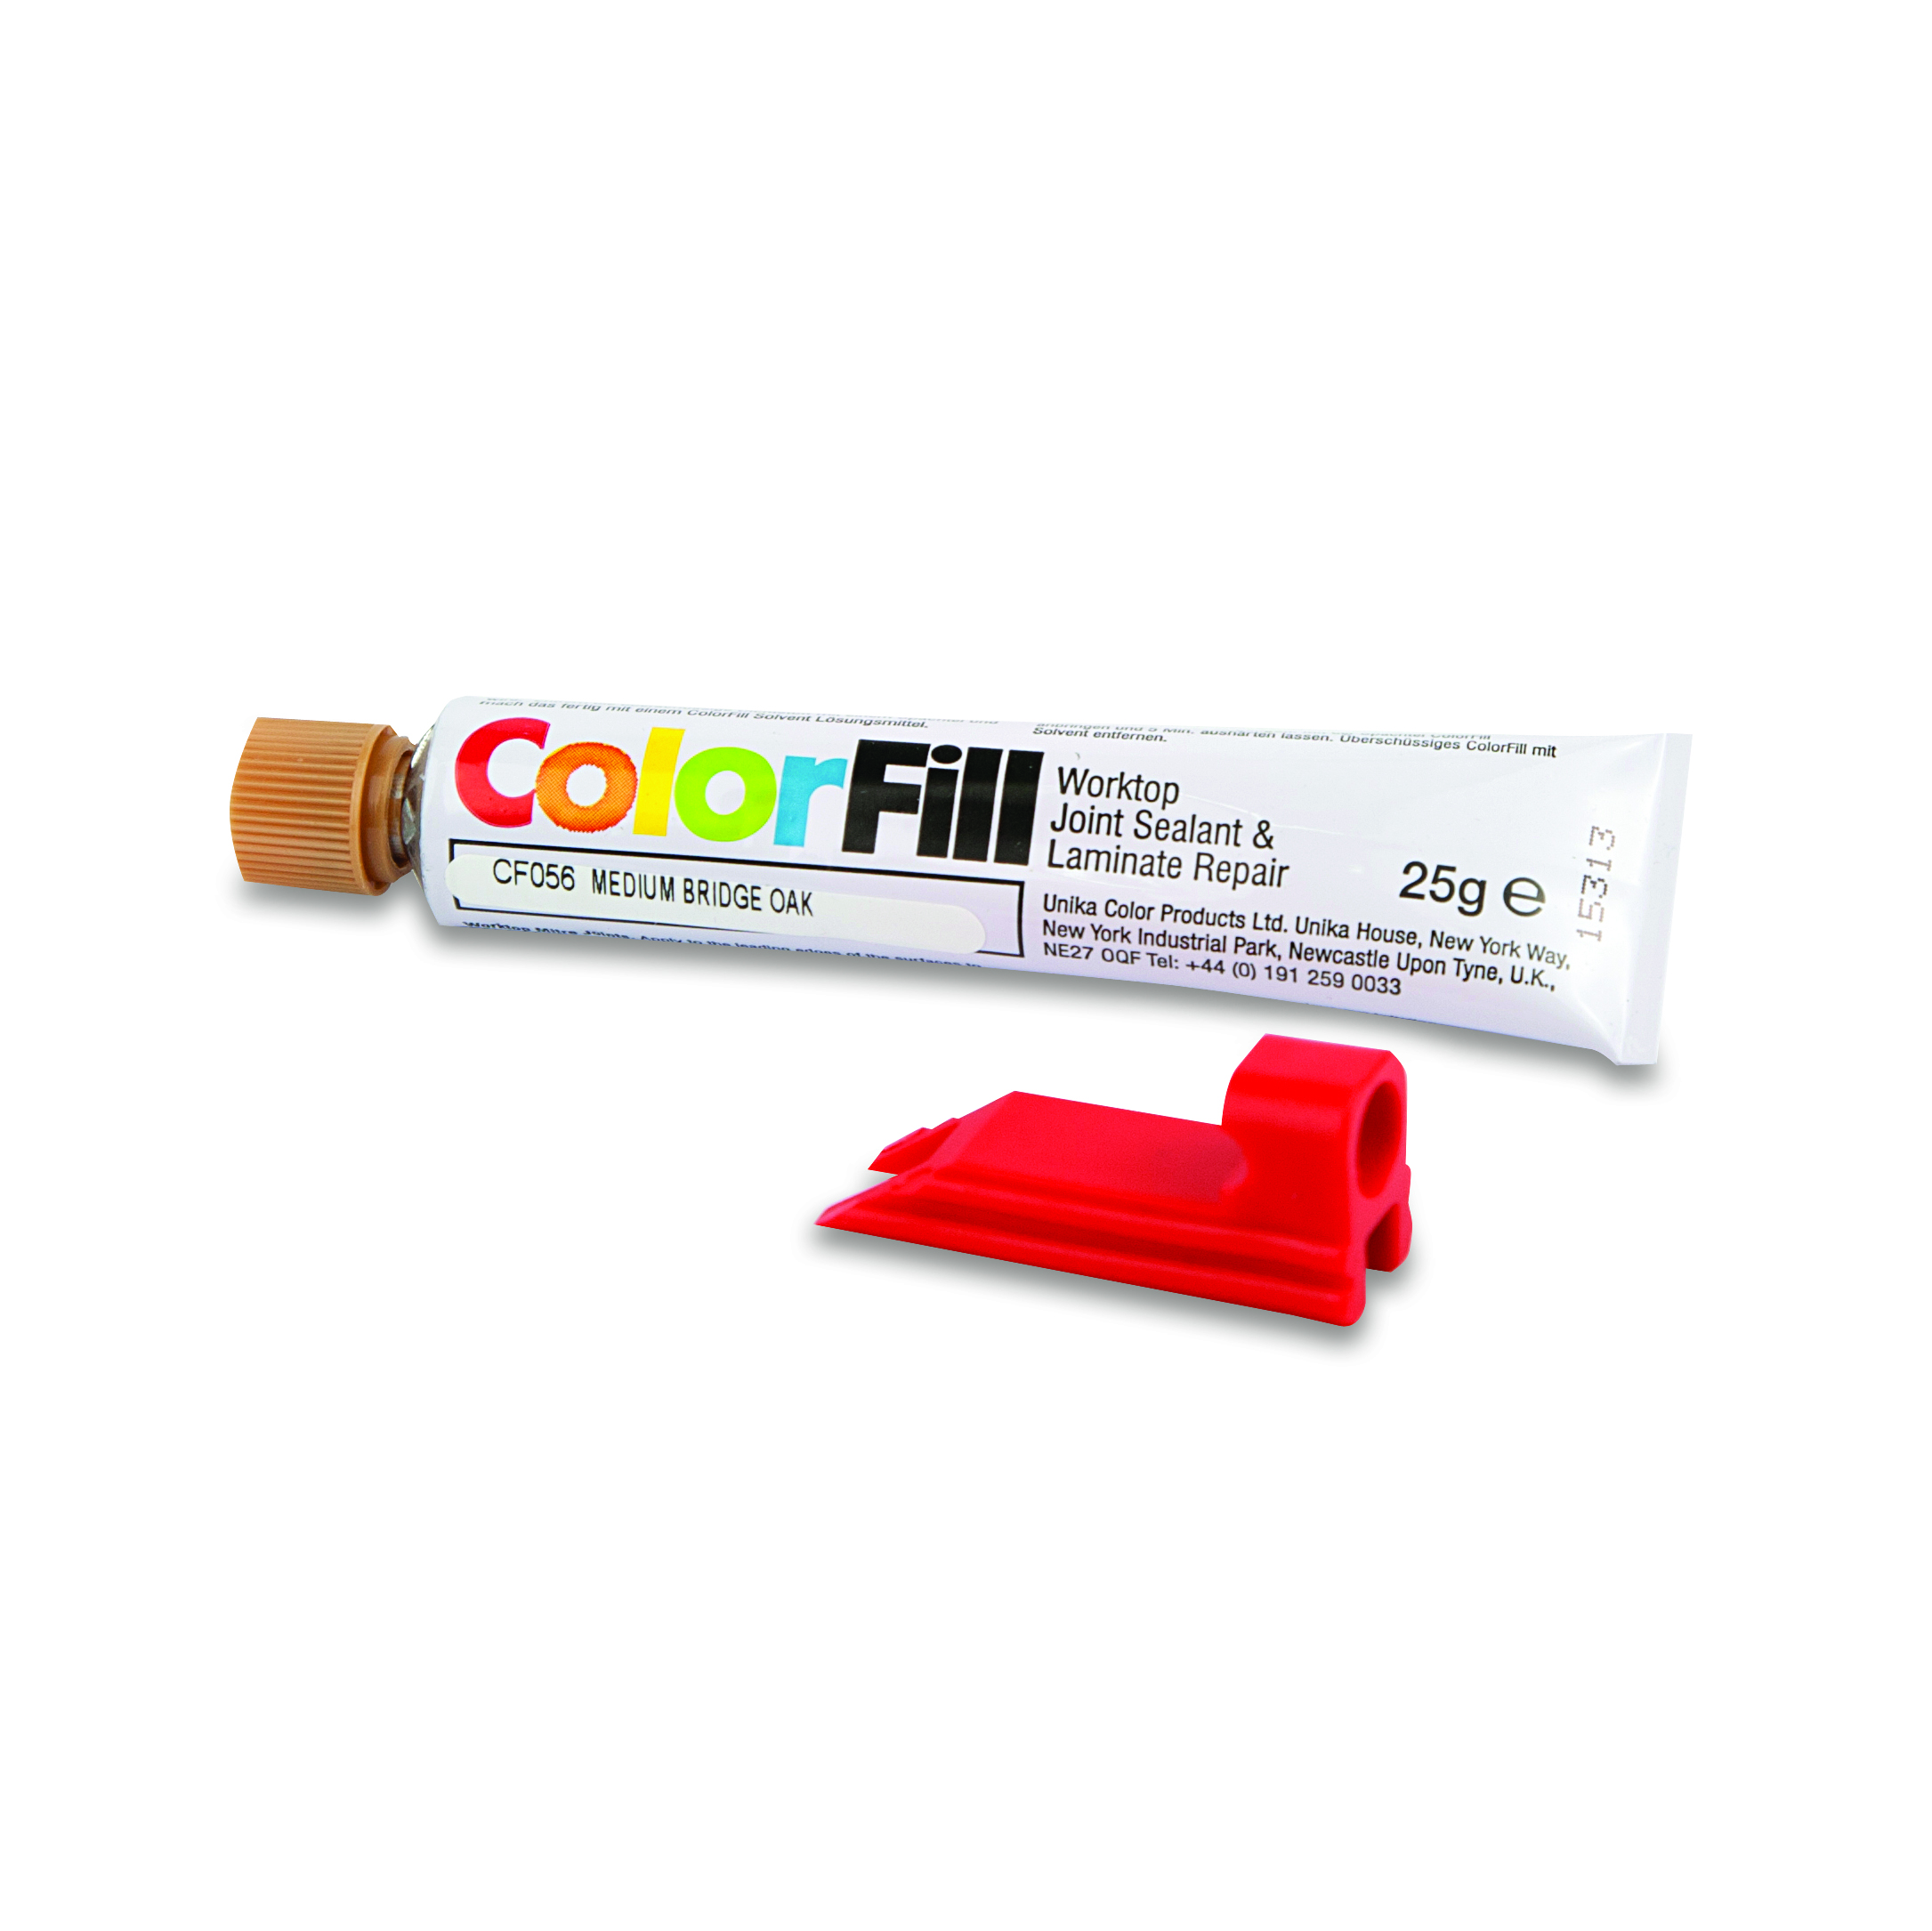 COLORFILL TUBE AND APPLICATOR